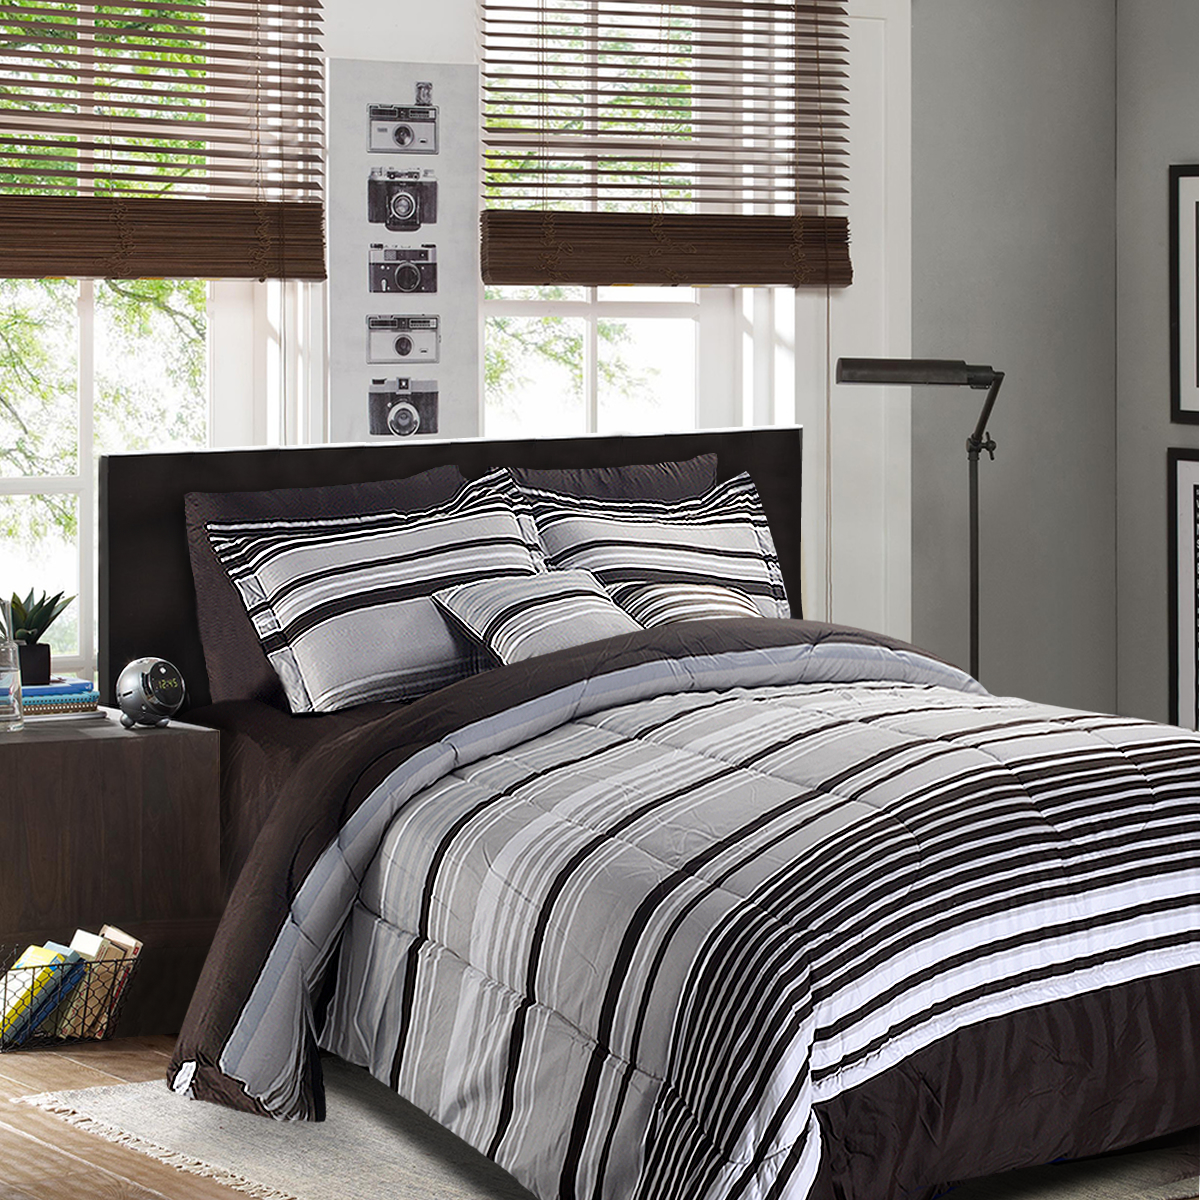 Luxury Striped Pattern 8+2 Piece Comforter Set Full Size, Queen Size, King Size-queen size